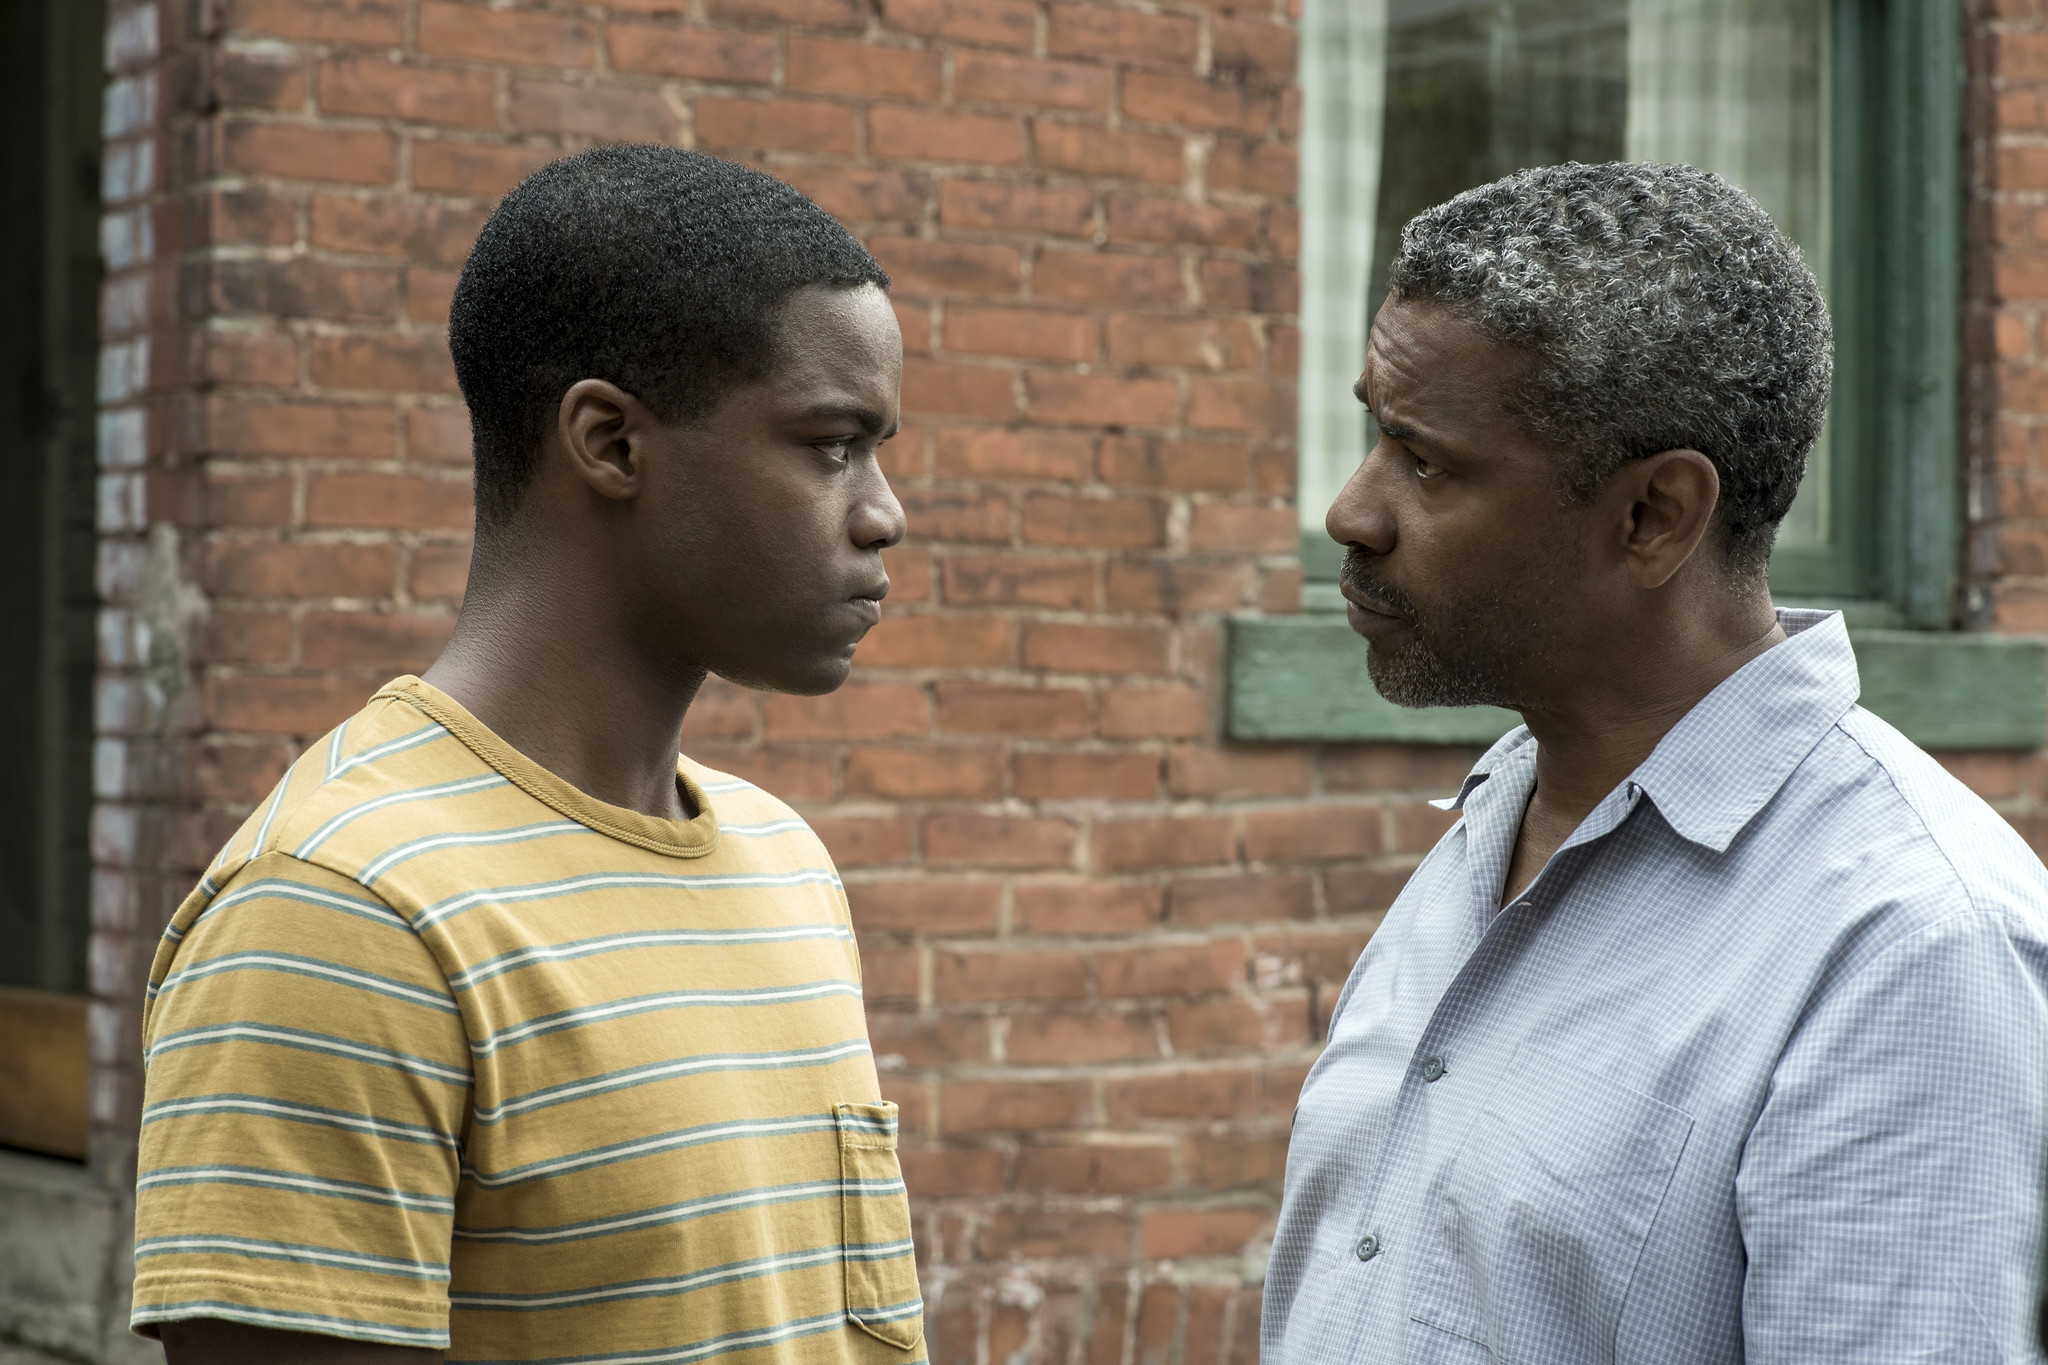 Fences (2016) - Directed by:Denzel WashingtonWritten by:August Wilson